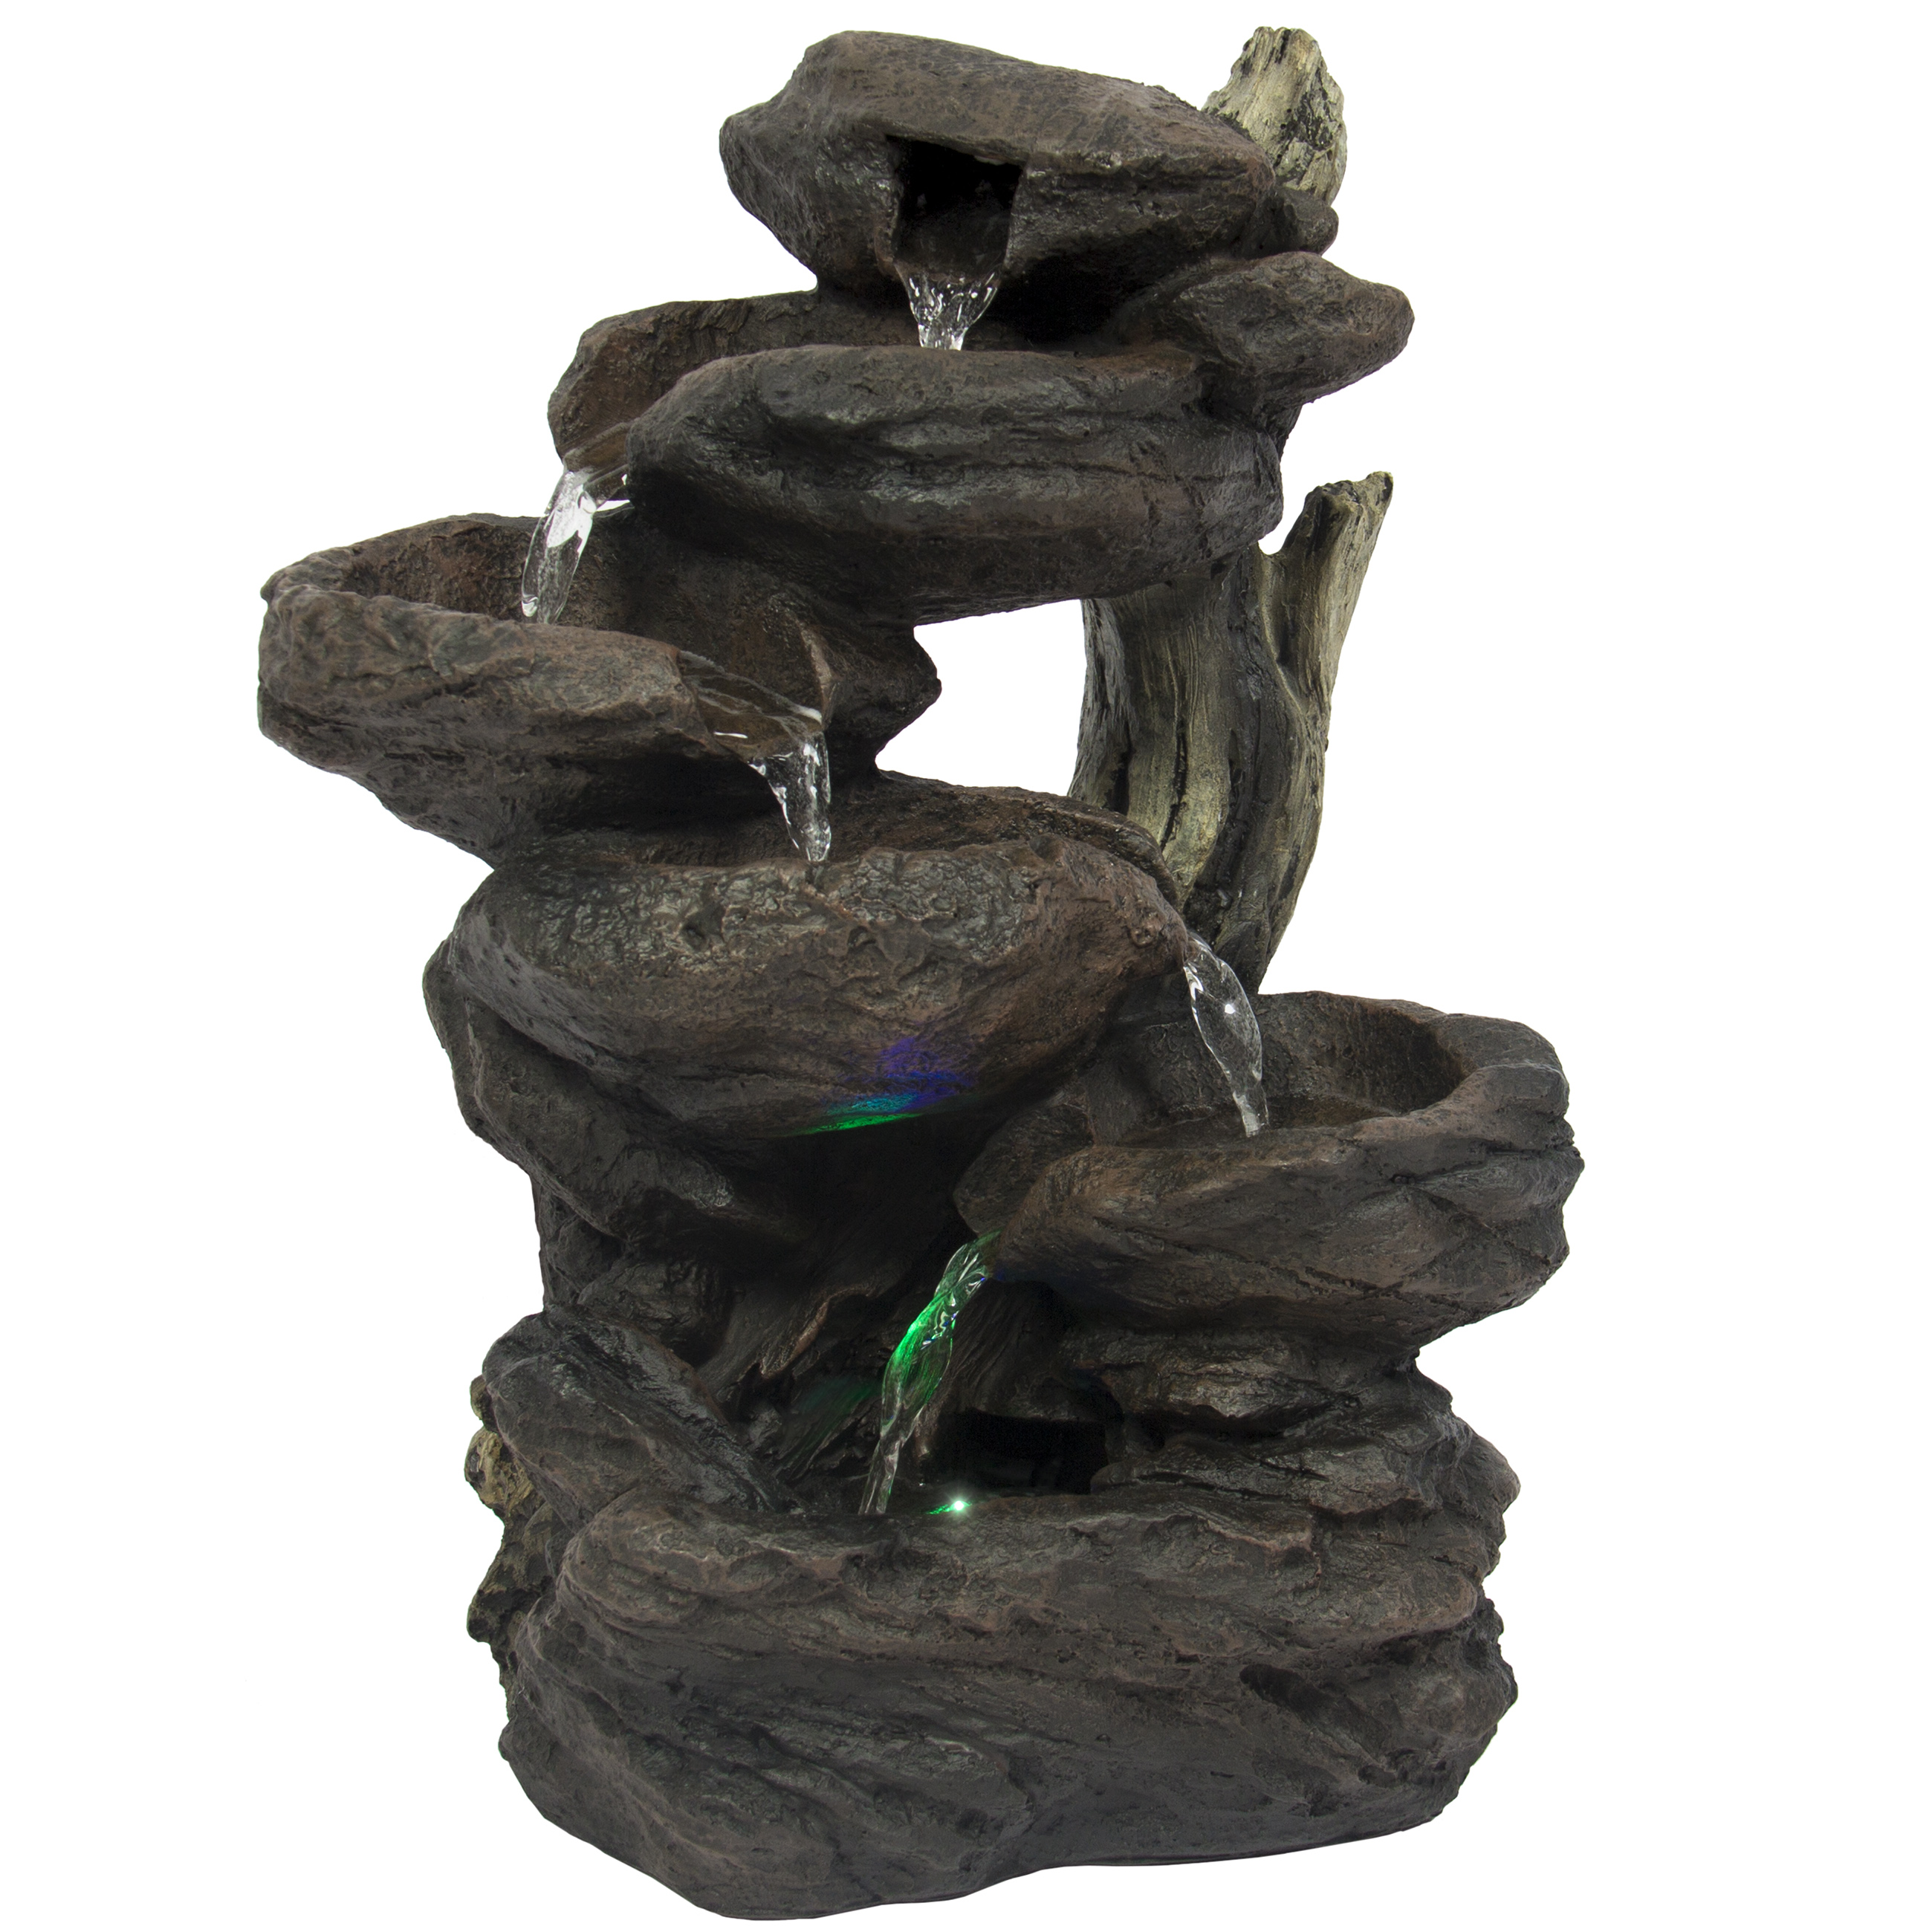 Best Choice Products Home Indoor 6-Tier Tabletop Fountain Waterfall With Multicolor LED Lights